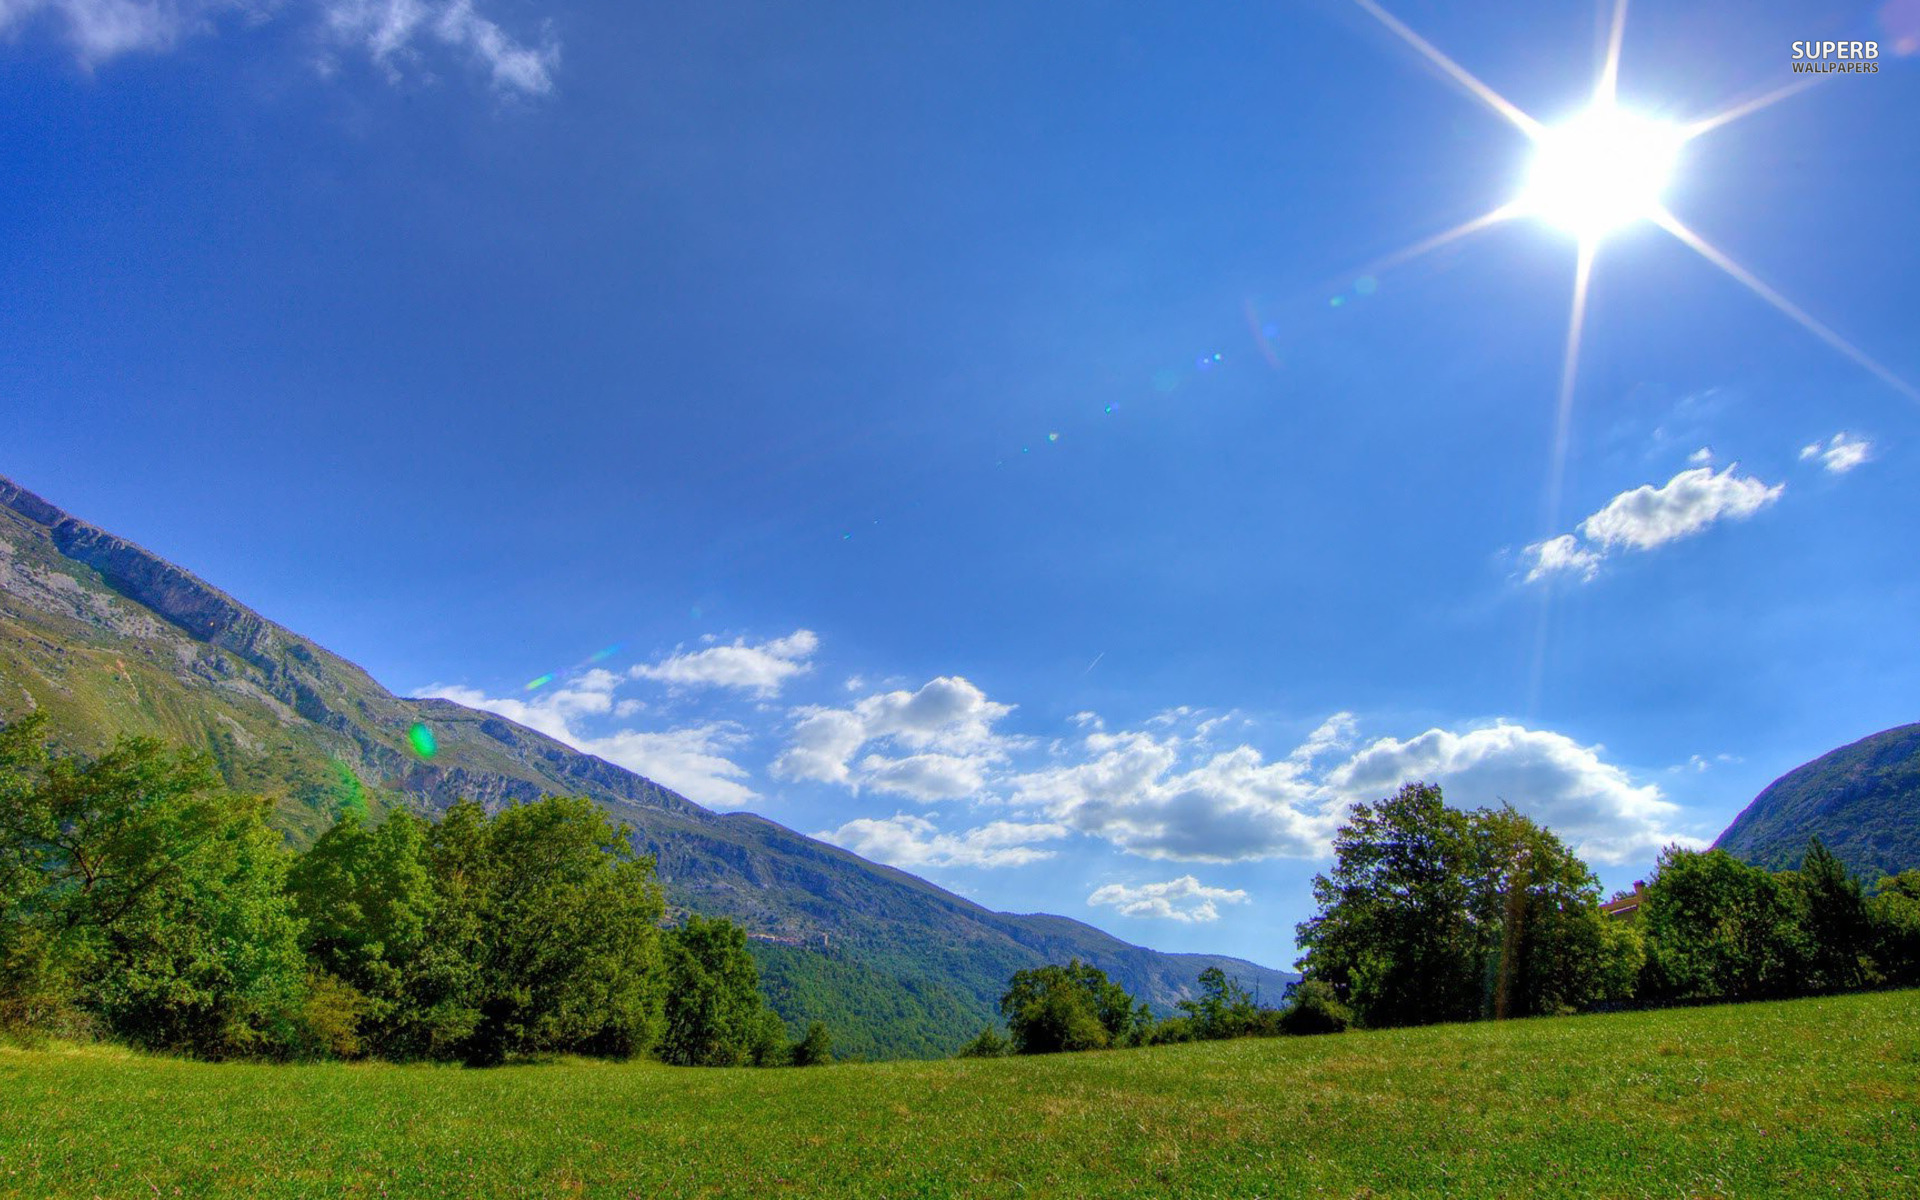 Mountains Trees Field Sunlight Wallpapers  Mountains -6052